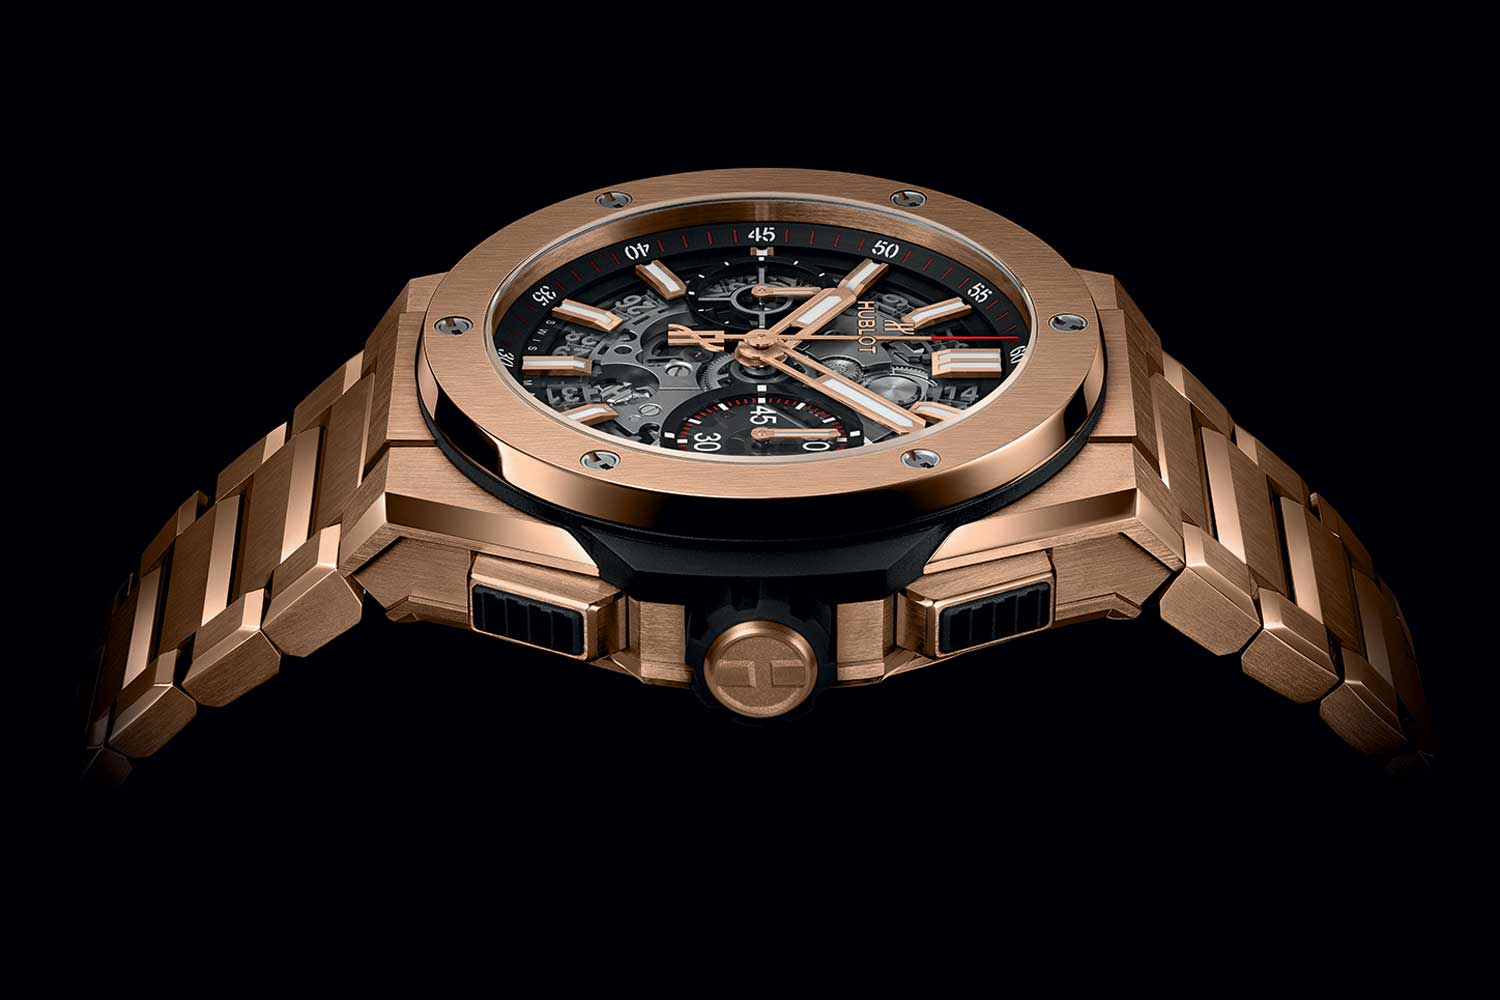 The Hublot Big Bang Unico Bracelet King Gold from the side, revealing the original pushers of the Big Bang which inspired the integrated bracelet's construction.